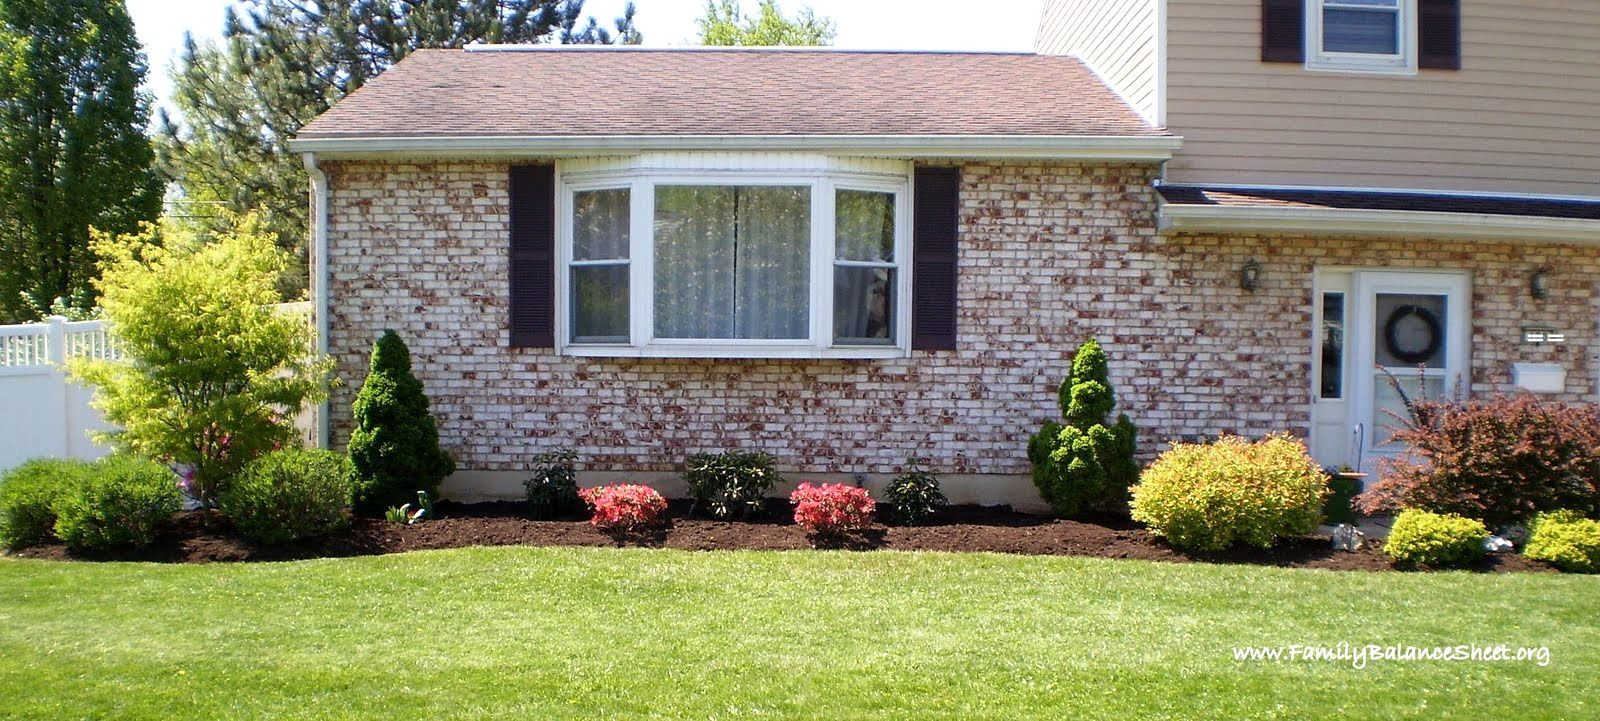 Landscaping ideas front yard ranch style home front yard for Small simple garden design ideas